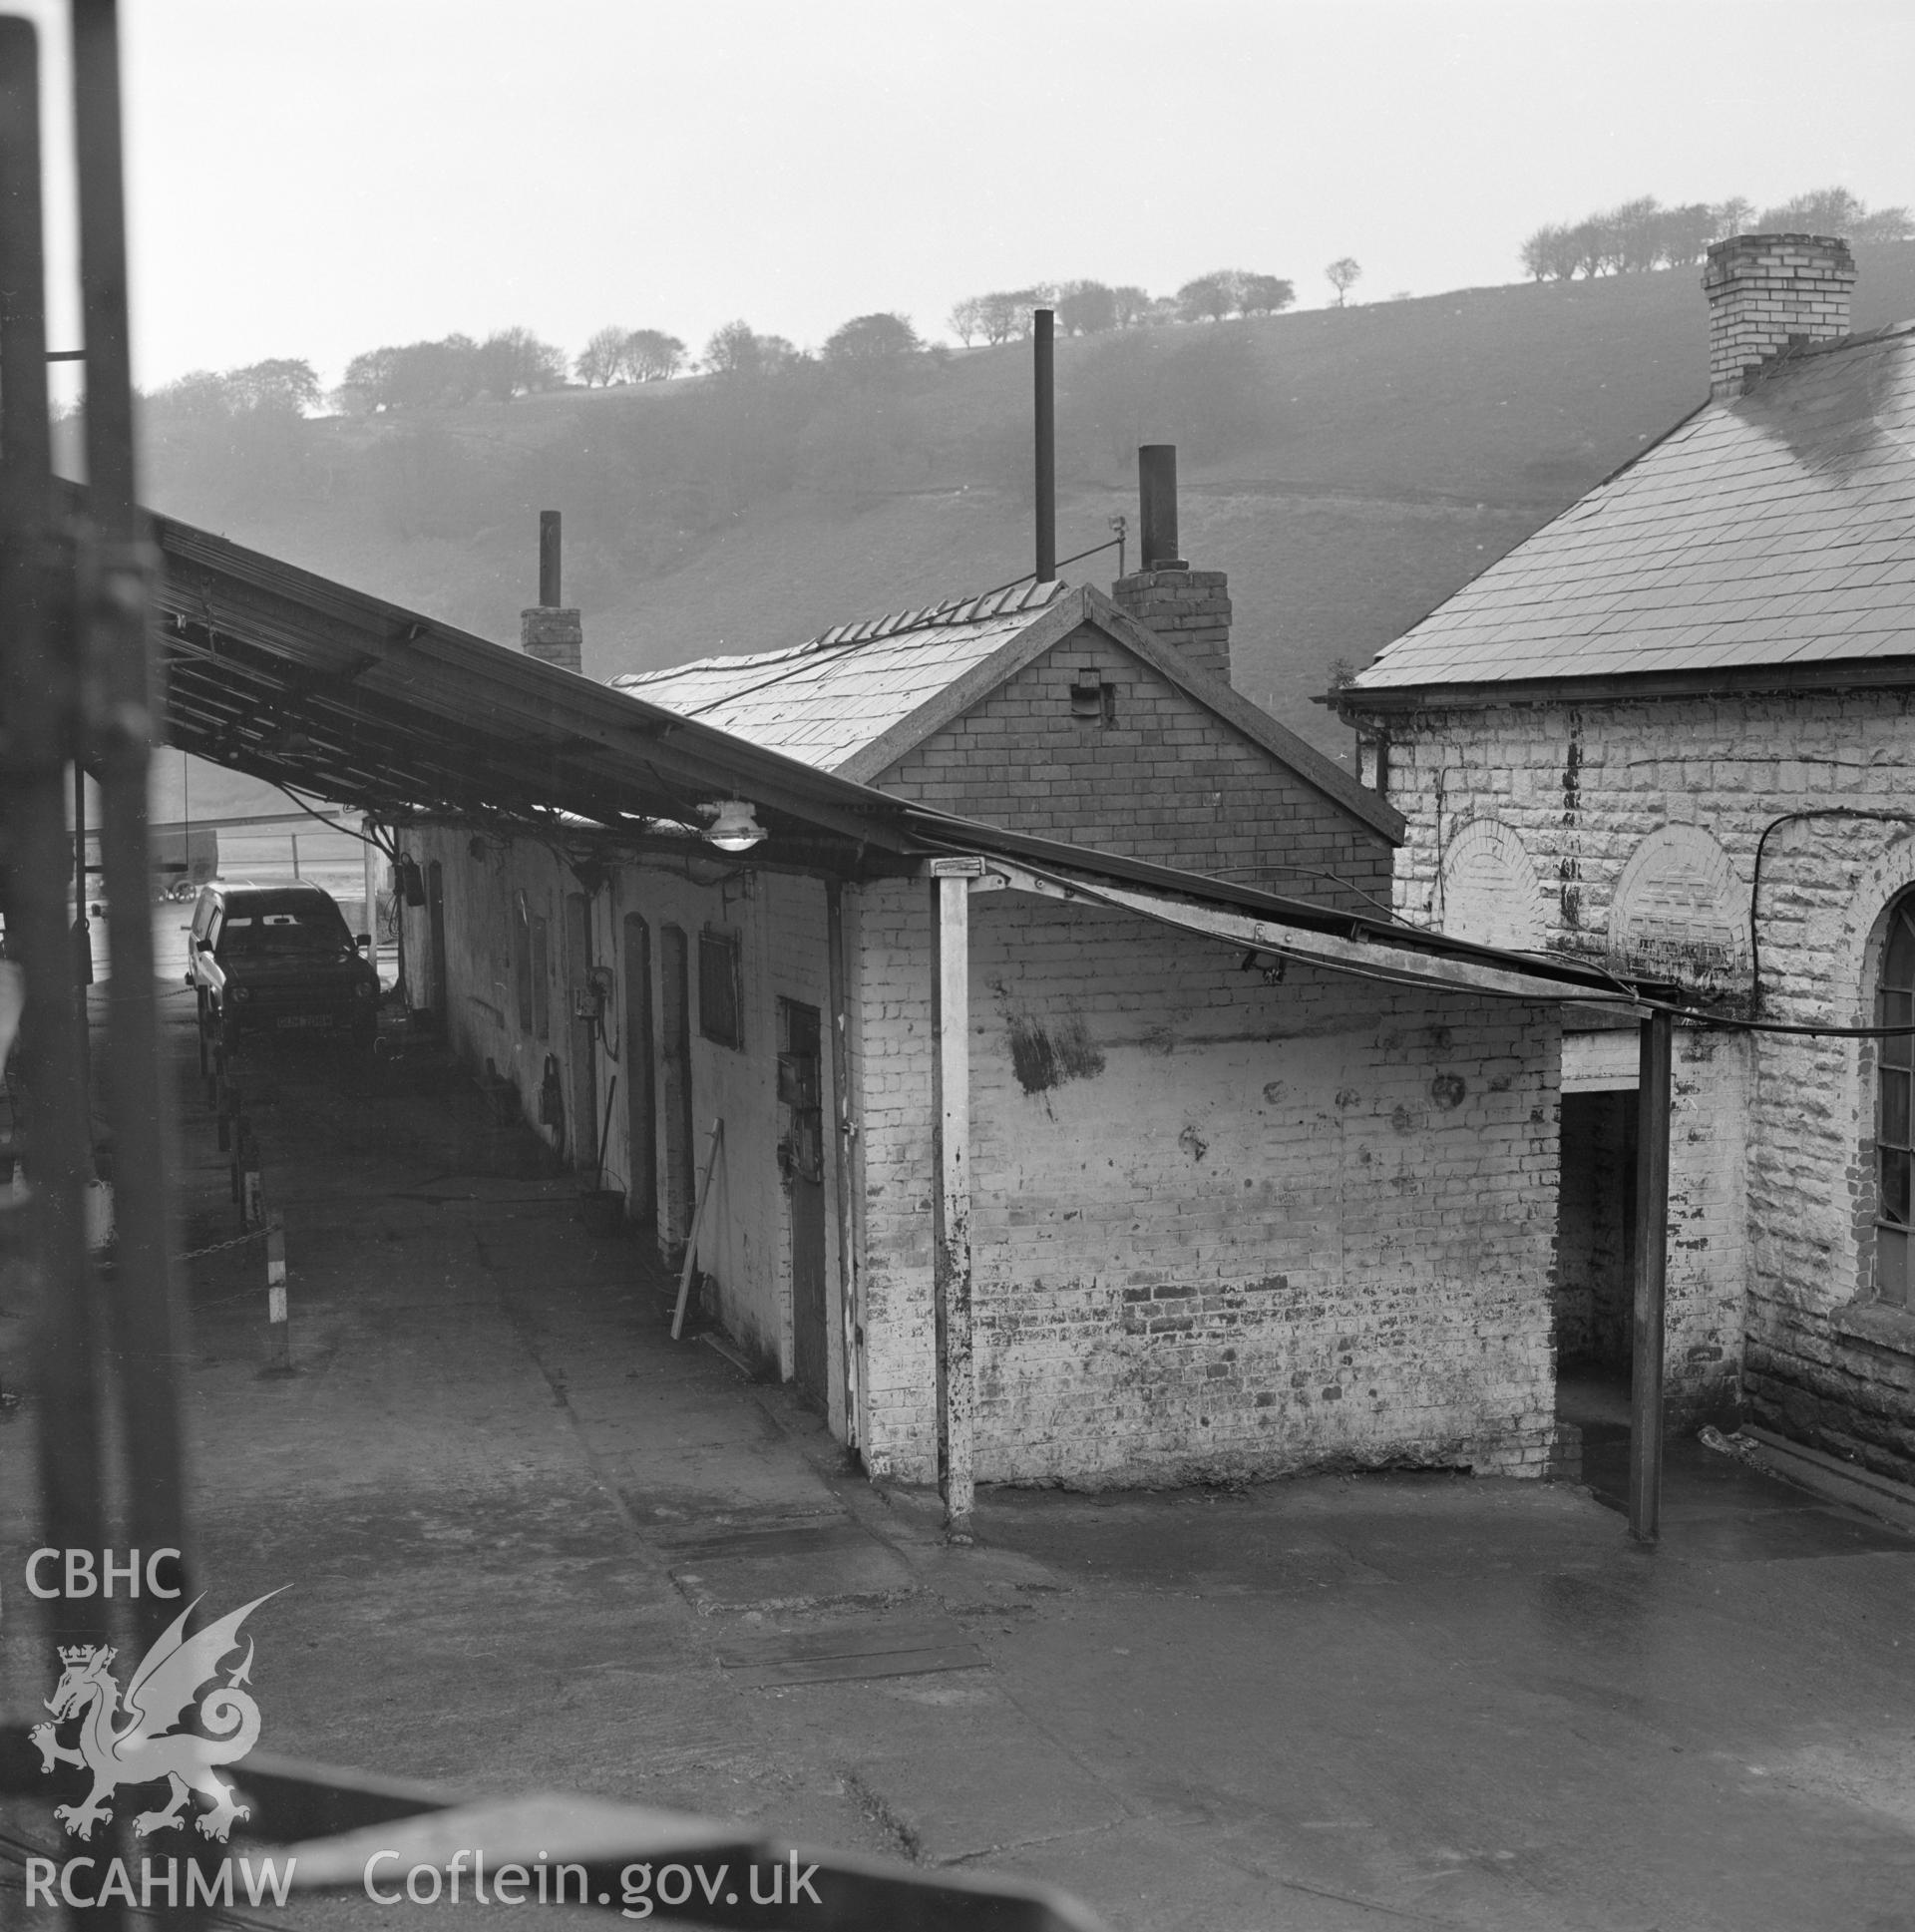 Digital copy of an acetate negative showing Blaenserchan Colliery - lamp room with offices from the John Cornwell Collection.